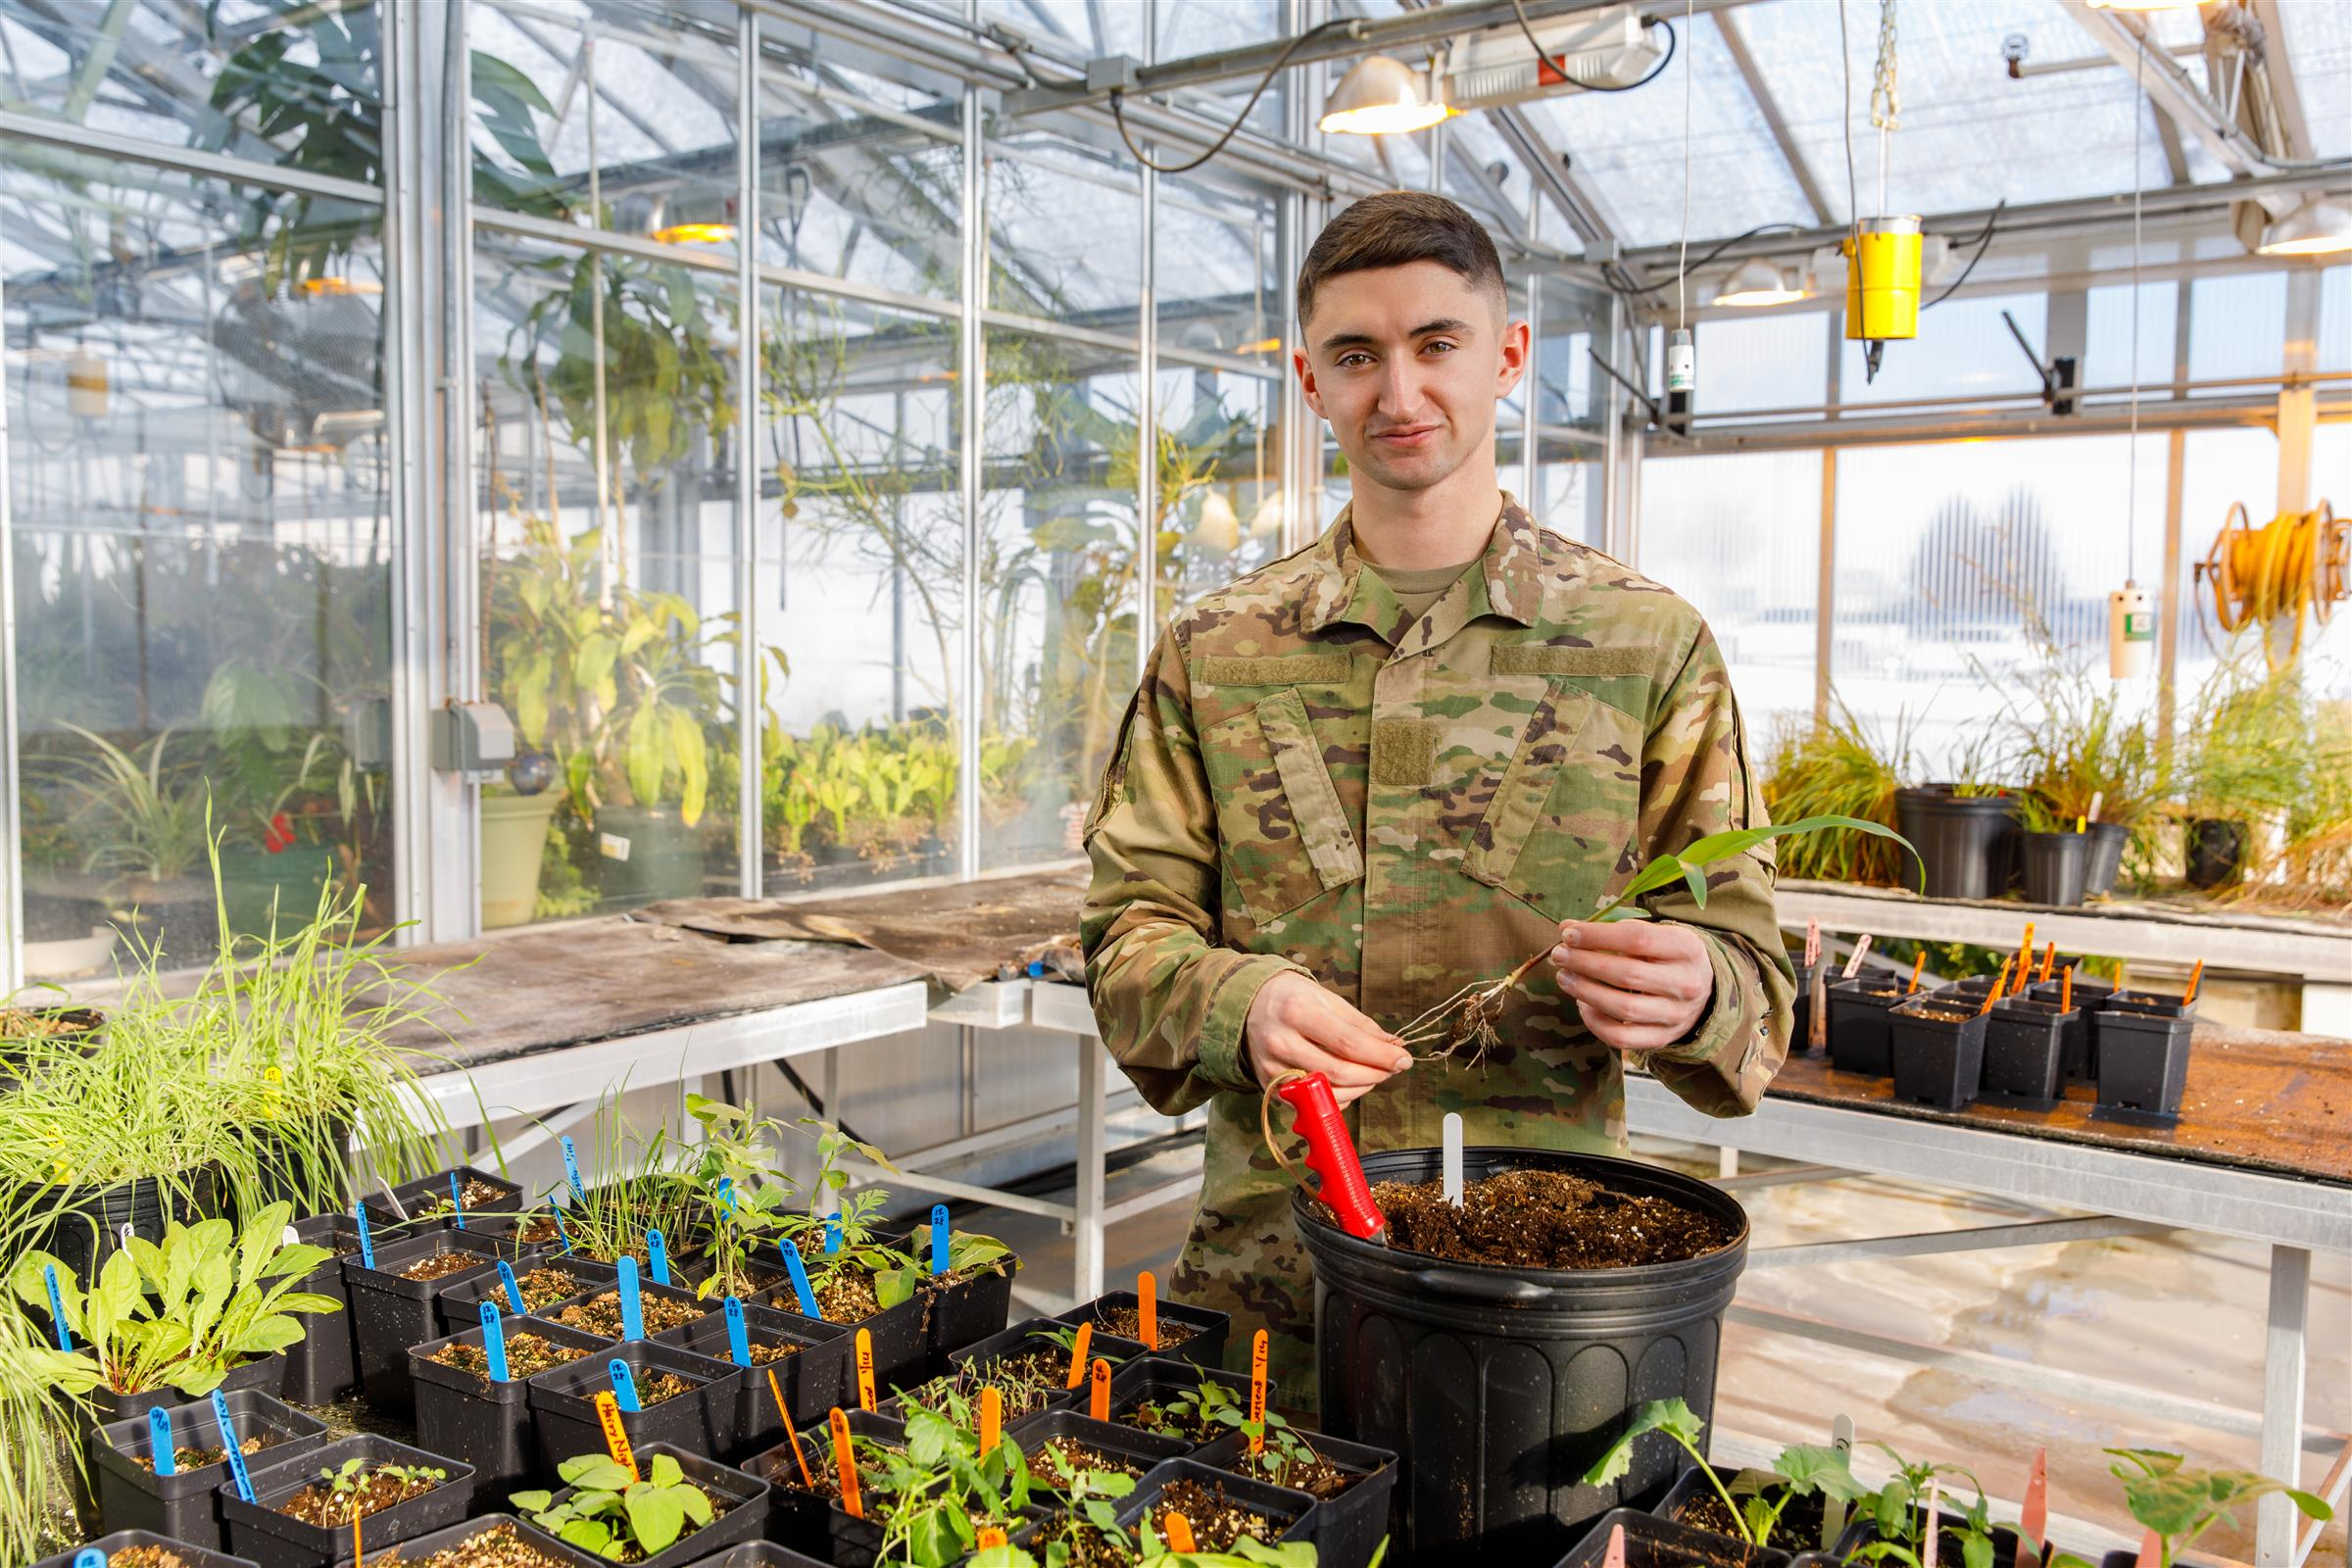 Military student in uniform holding a plant surrounded by plants in pots inside a greenhouse